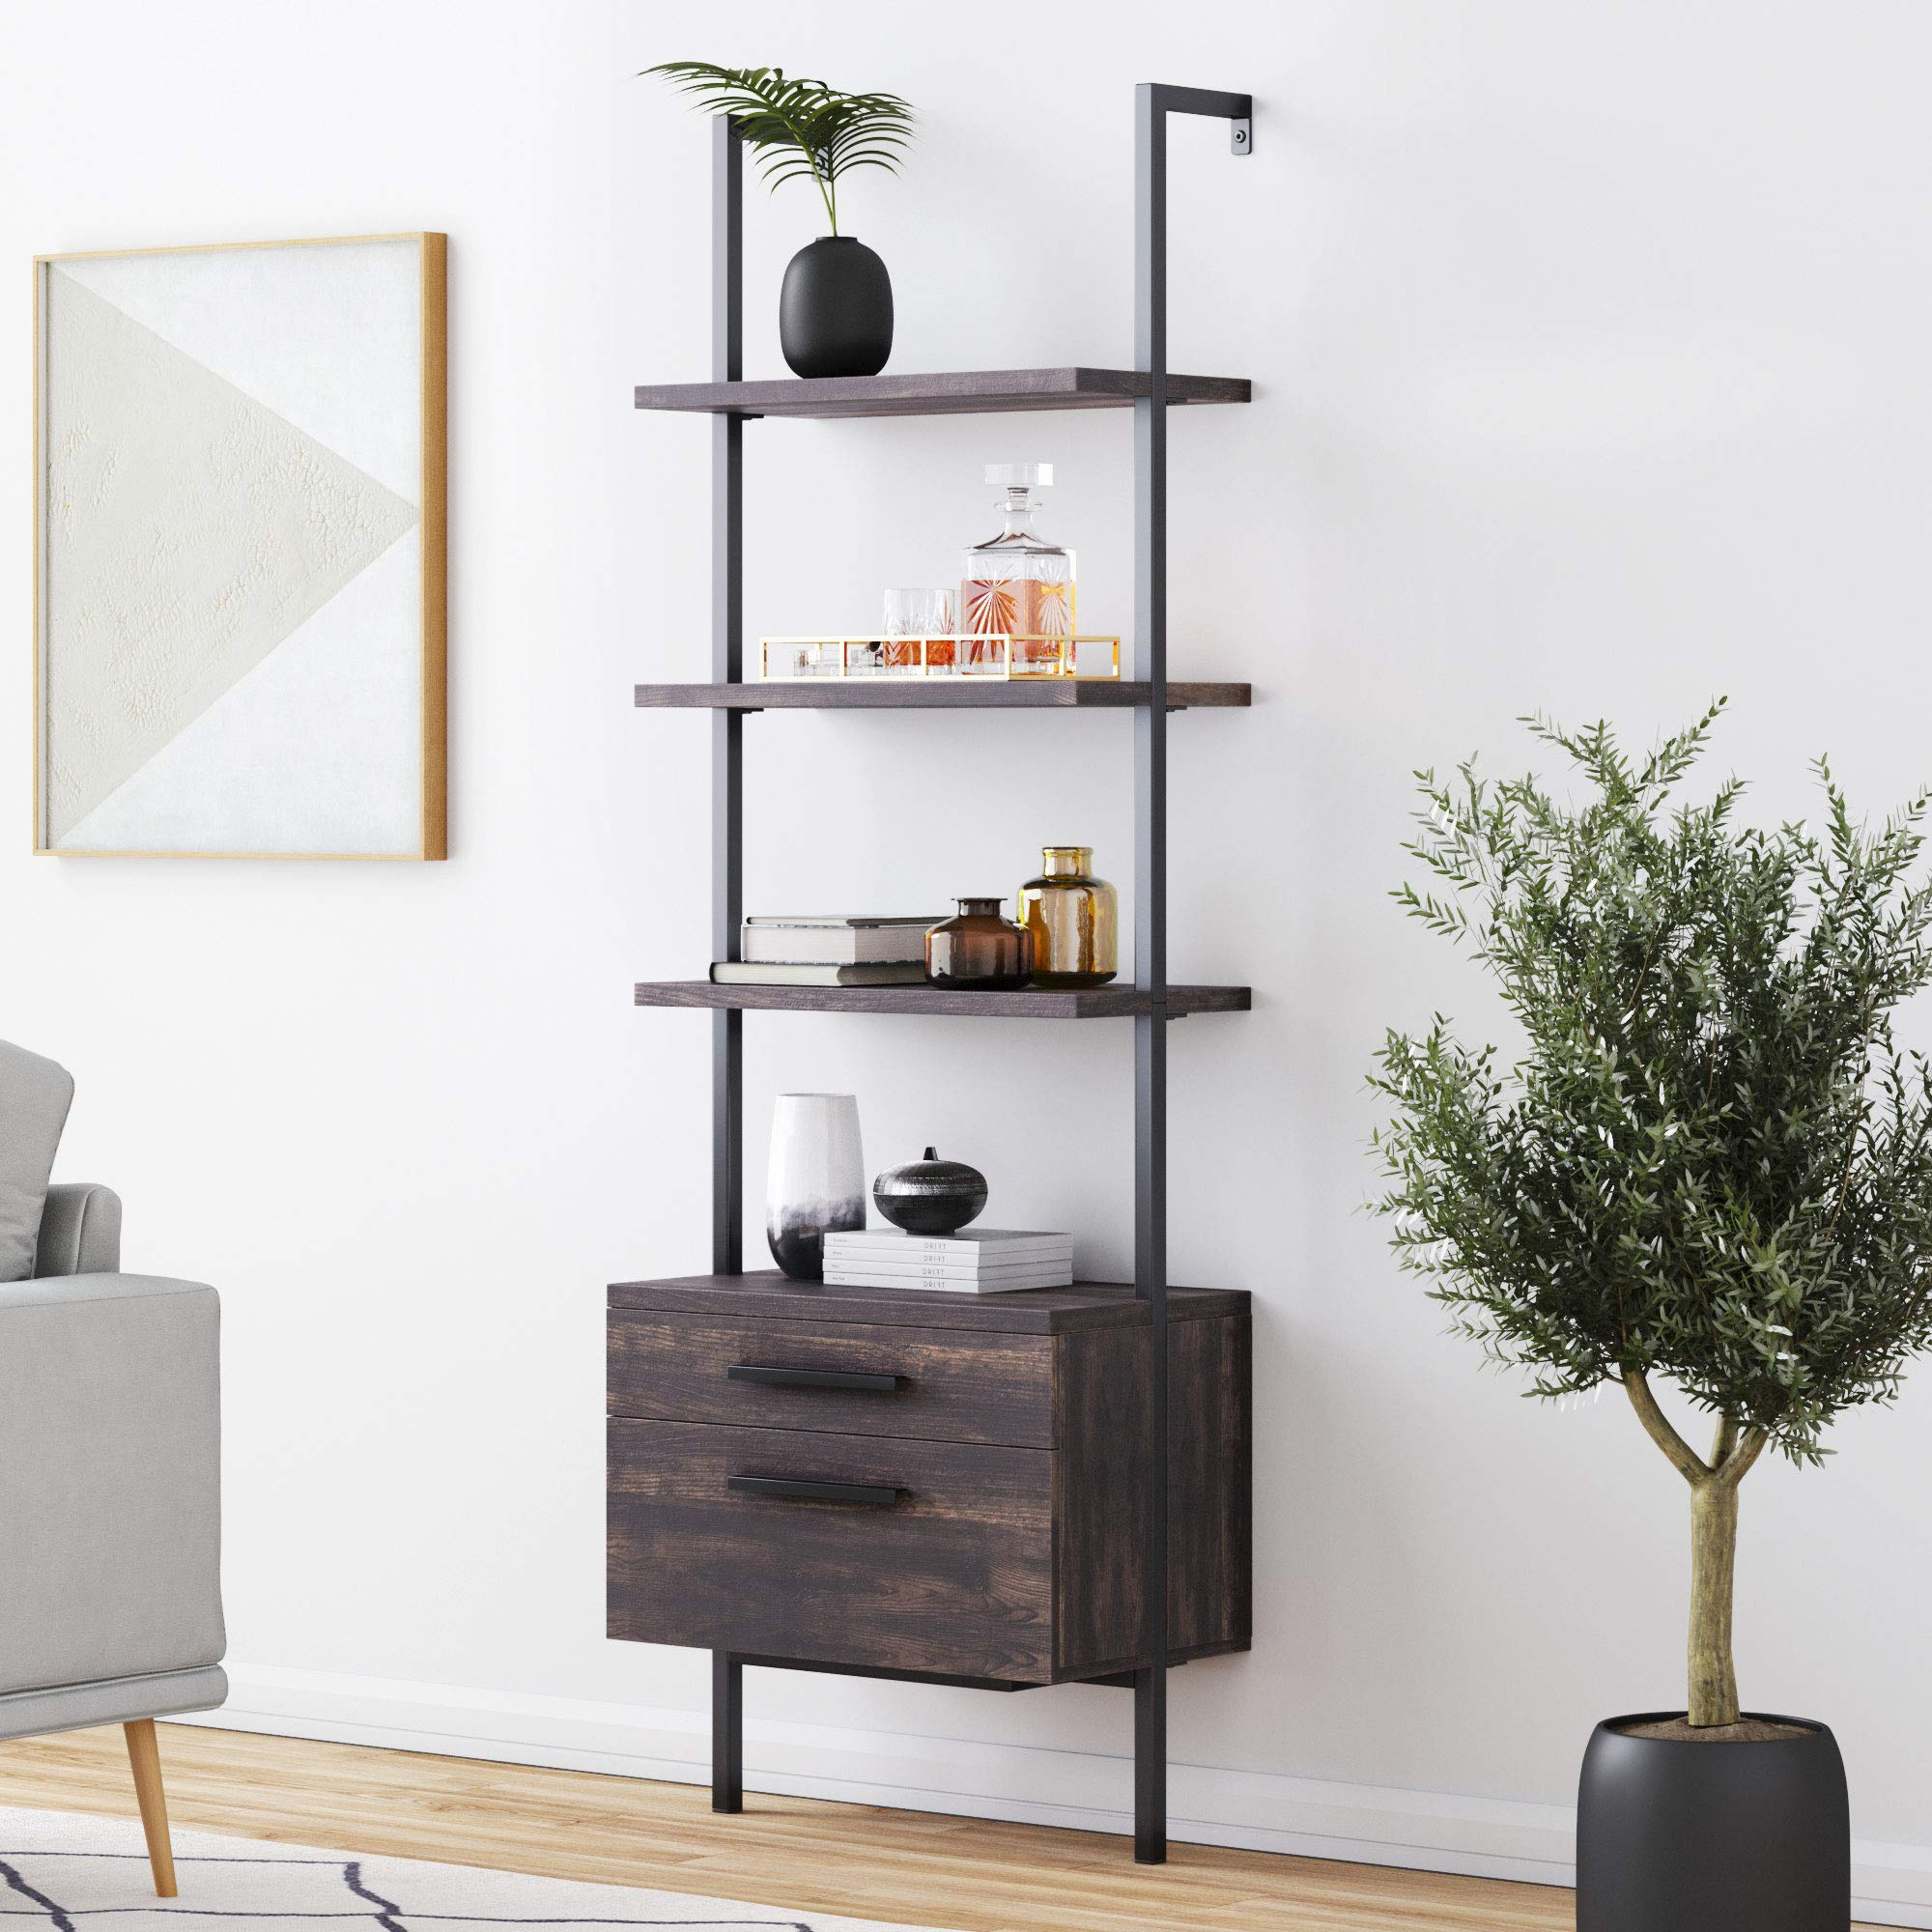 Nathan James 65801 Theo Industrial Bookshelf Wood Drawers and Matte Steel Frame, Nutmeg/Black by Nathan James